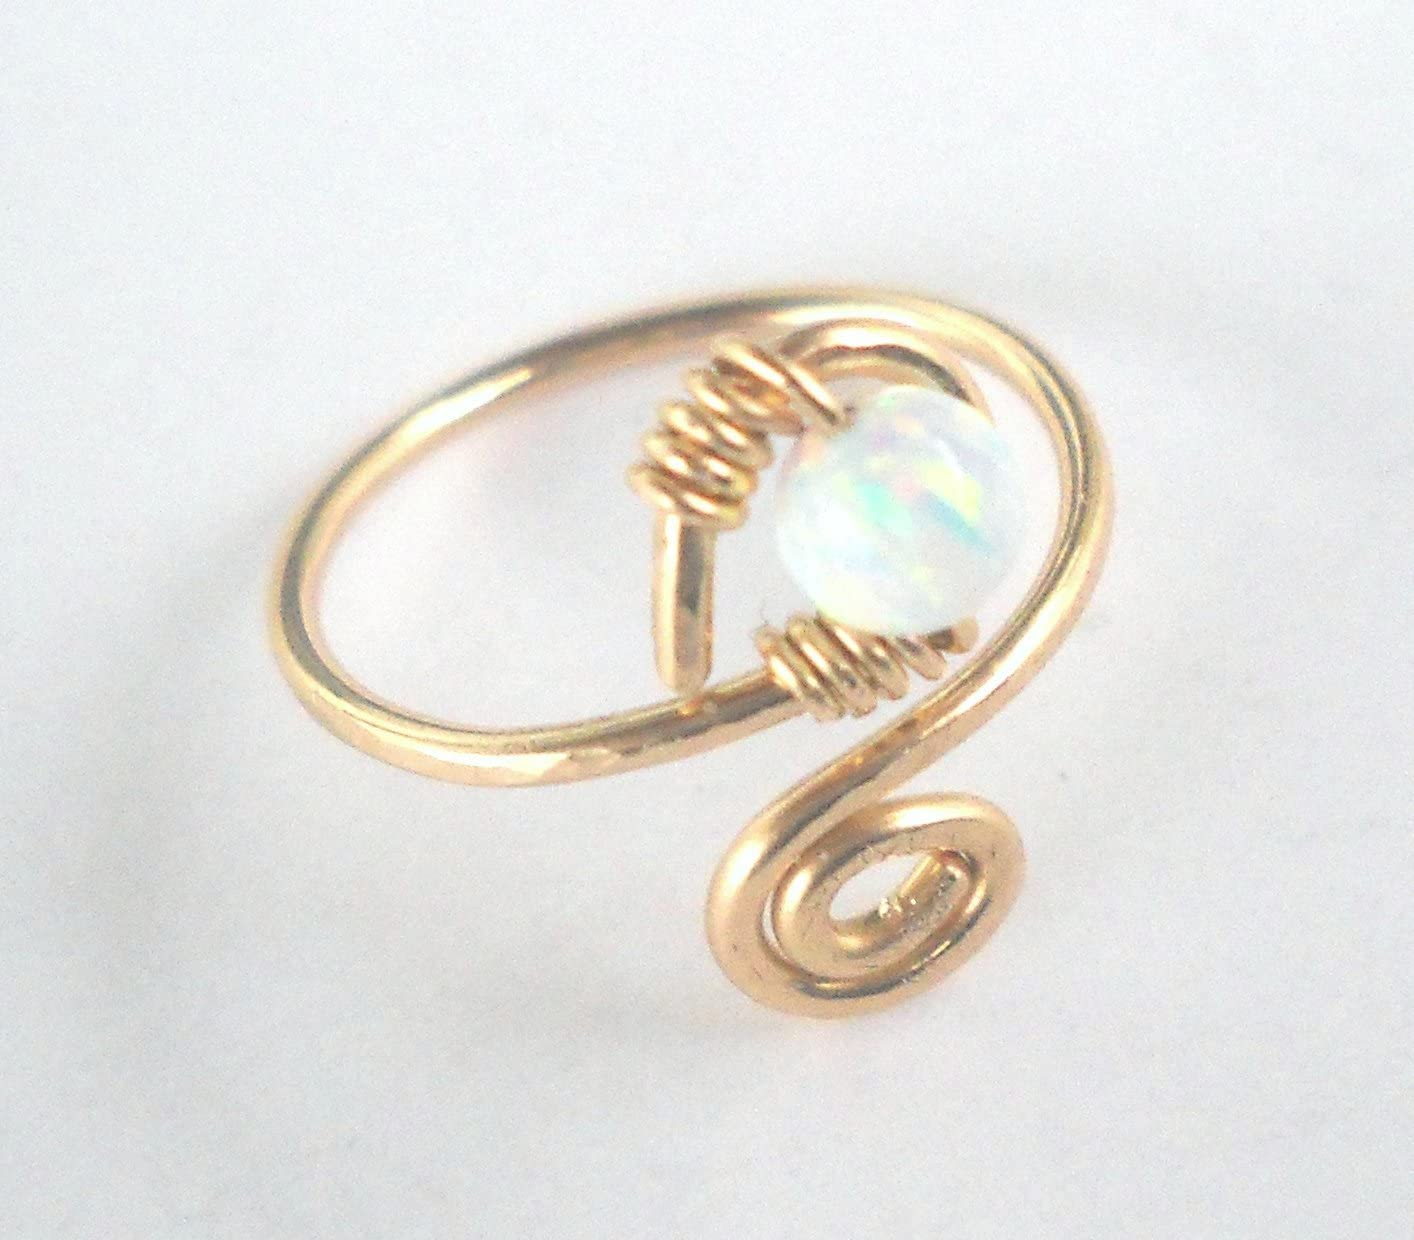 14K Solid Gold White Fire Opal Wrapped Hammered Spiral Toe-Midi-Knuckle Ring Adjustable Size